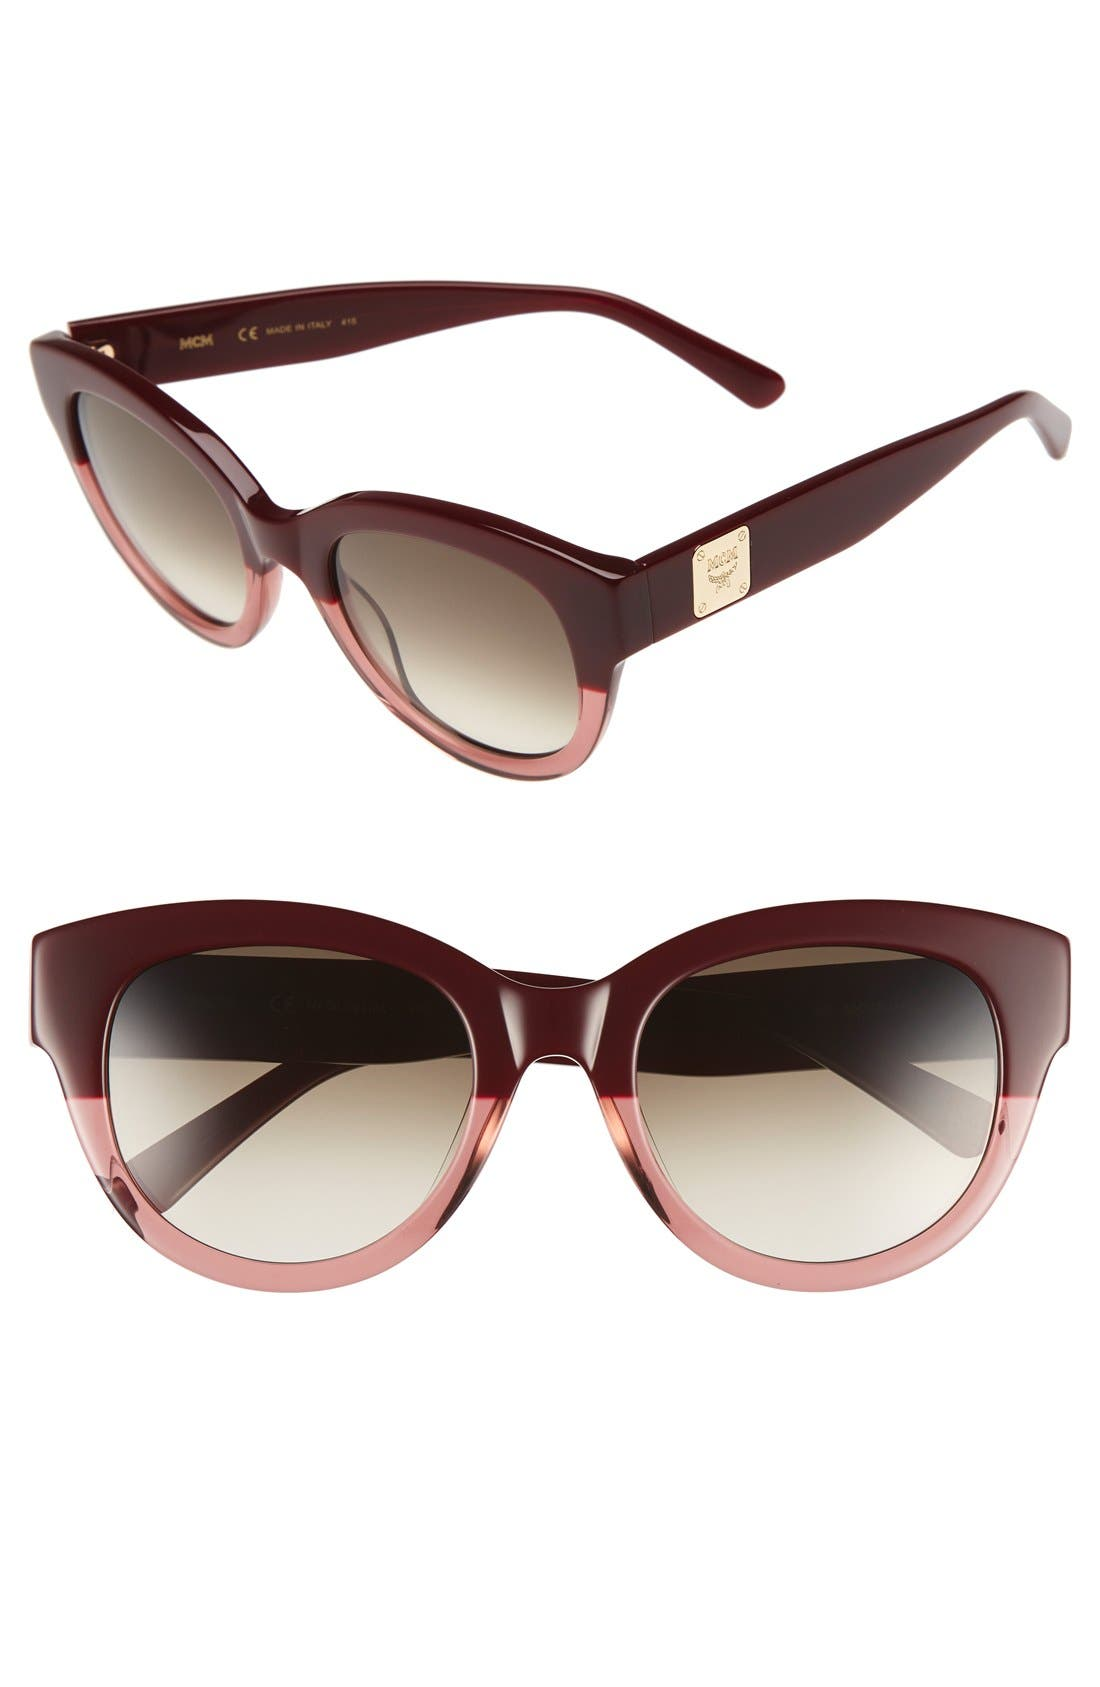 MCM 53mm Cat Eye Sunglasses